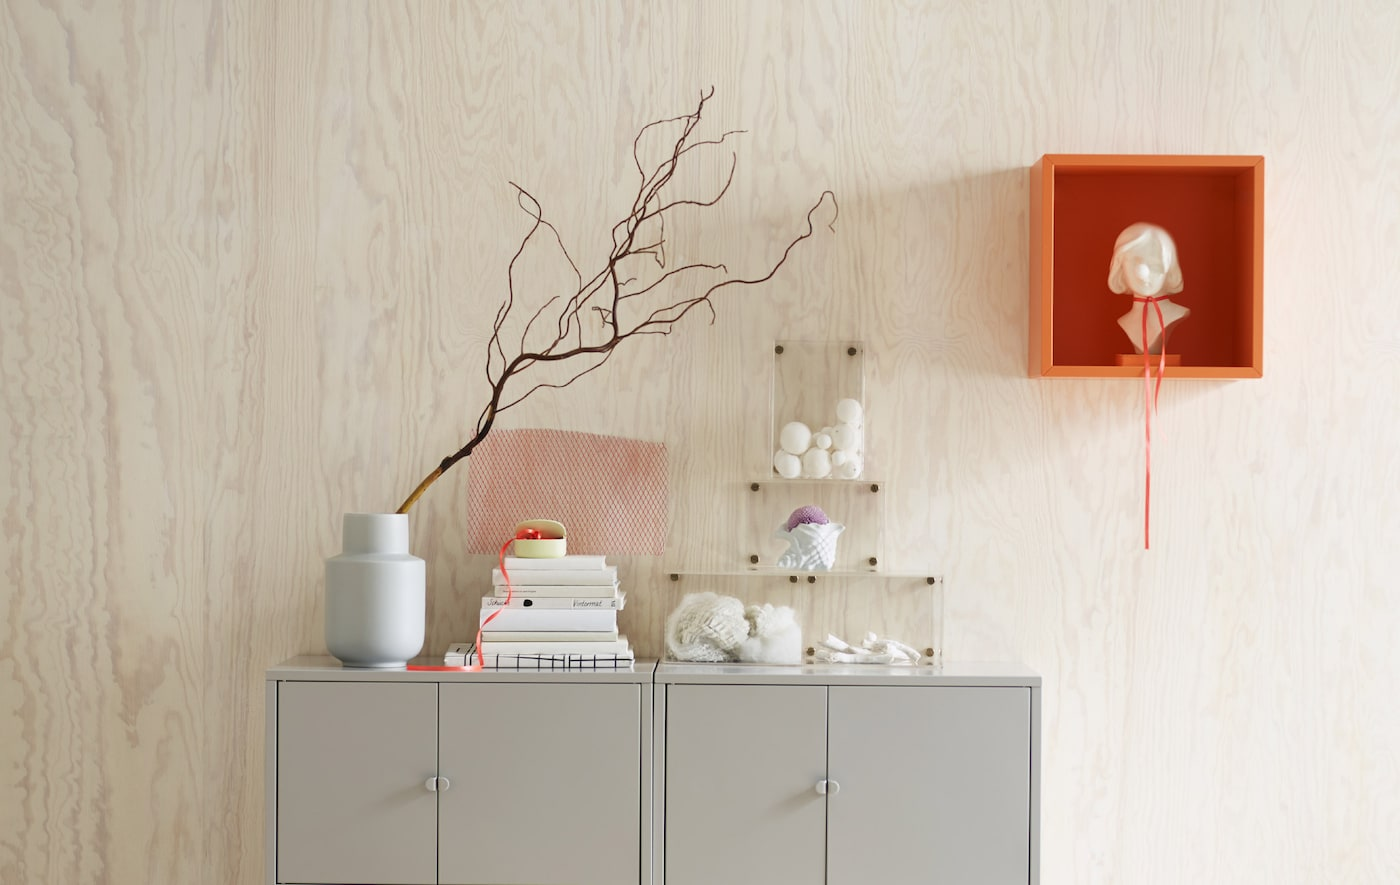 Two grey cabinets against a pine wall in fresh natural lighting, including an orange EKET wall mounted cabinet with a statue.